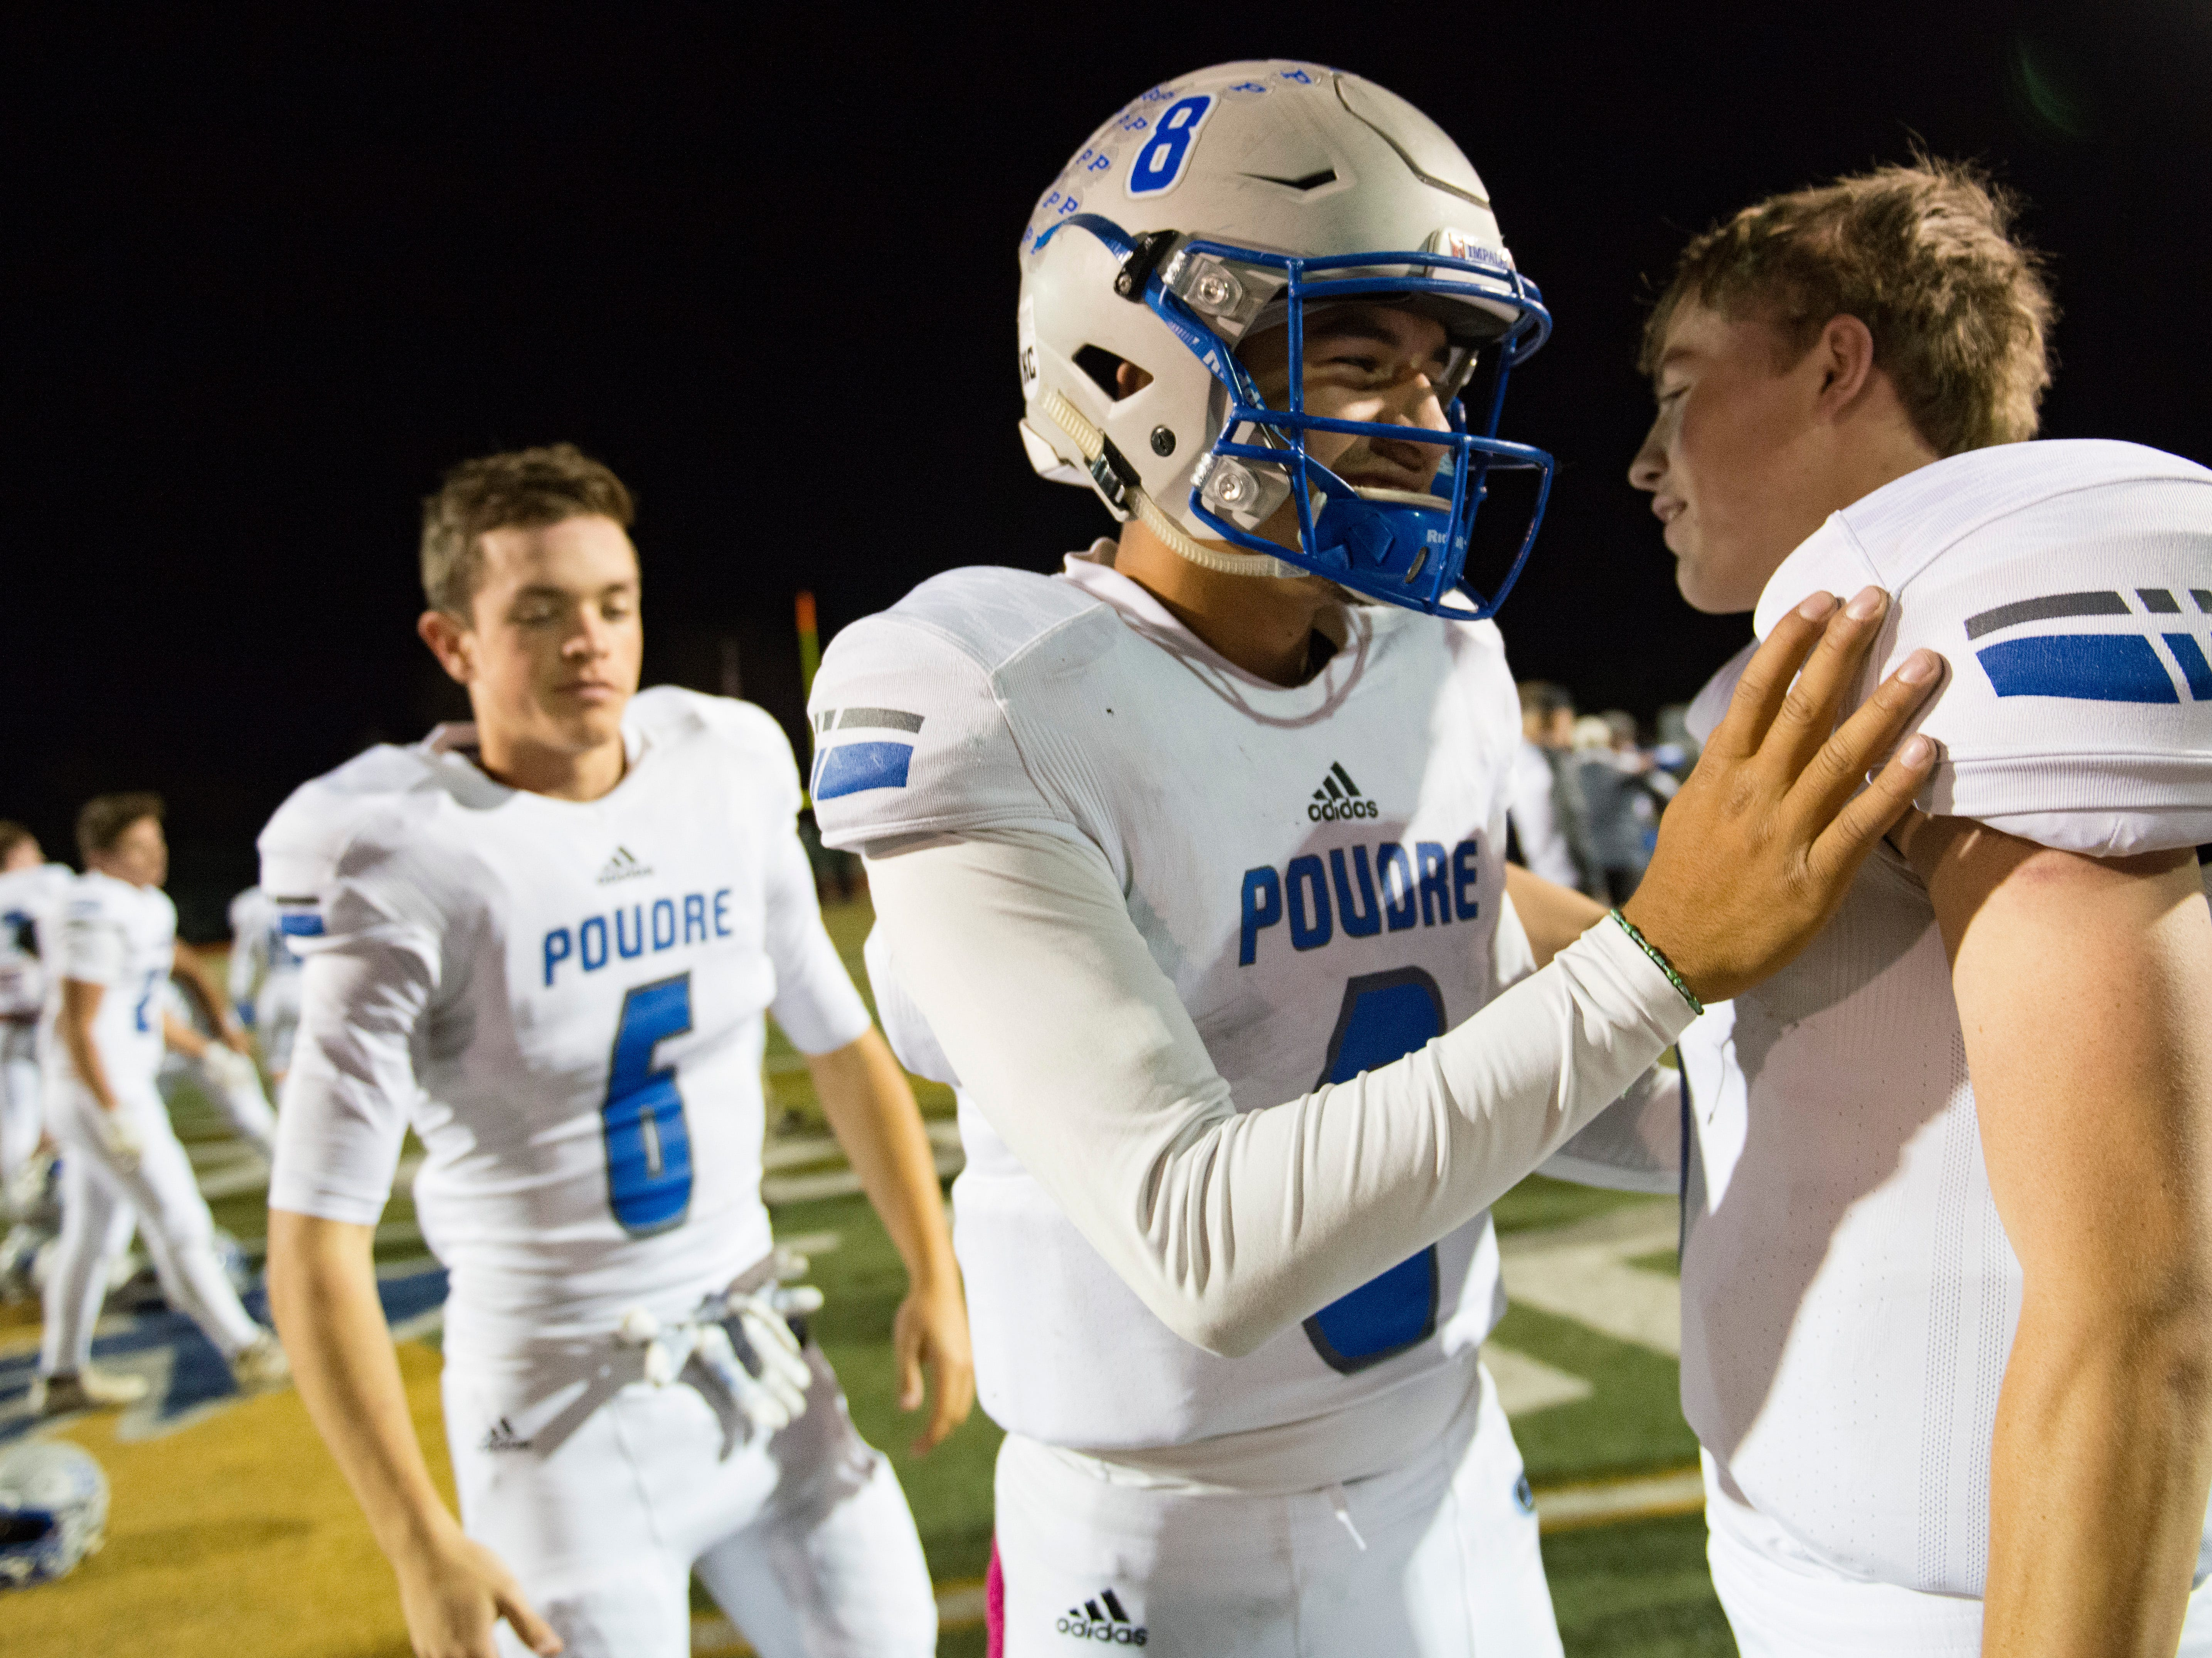 Poudre High School quarterback Sergio Tarango celebrates a 35-14 win over Fossil Ridge after a game at French Field on Friday, October 26, 2018.